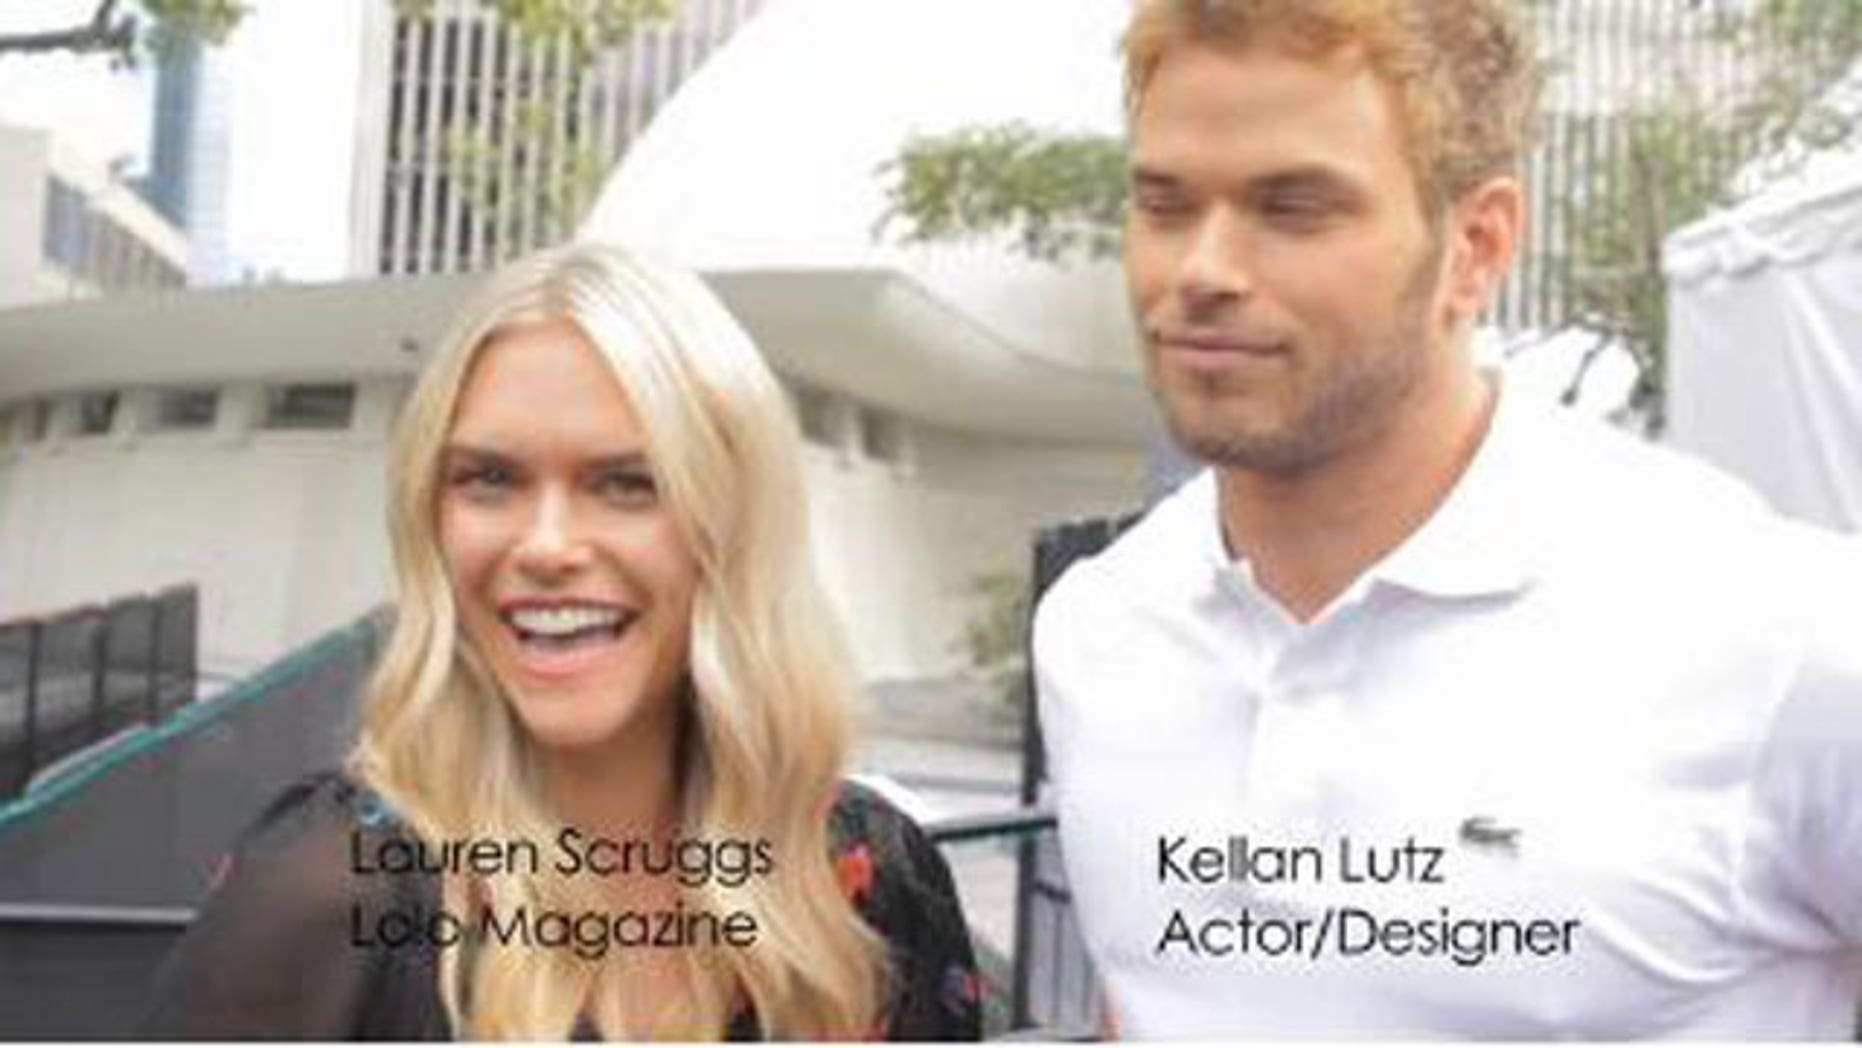 LoLo magazine editor and model Lauren Scruggs interviewing Kellan Lutz (LoLo/Vimeo)